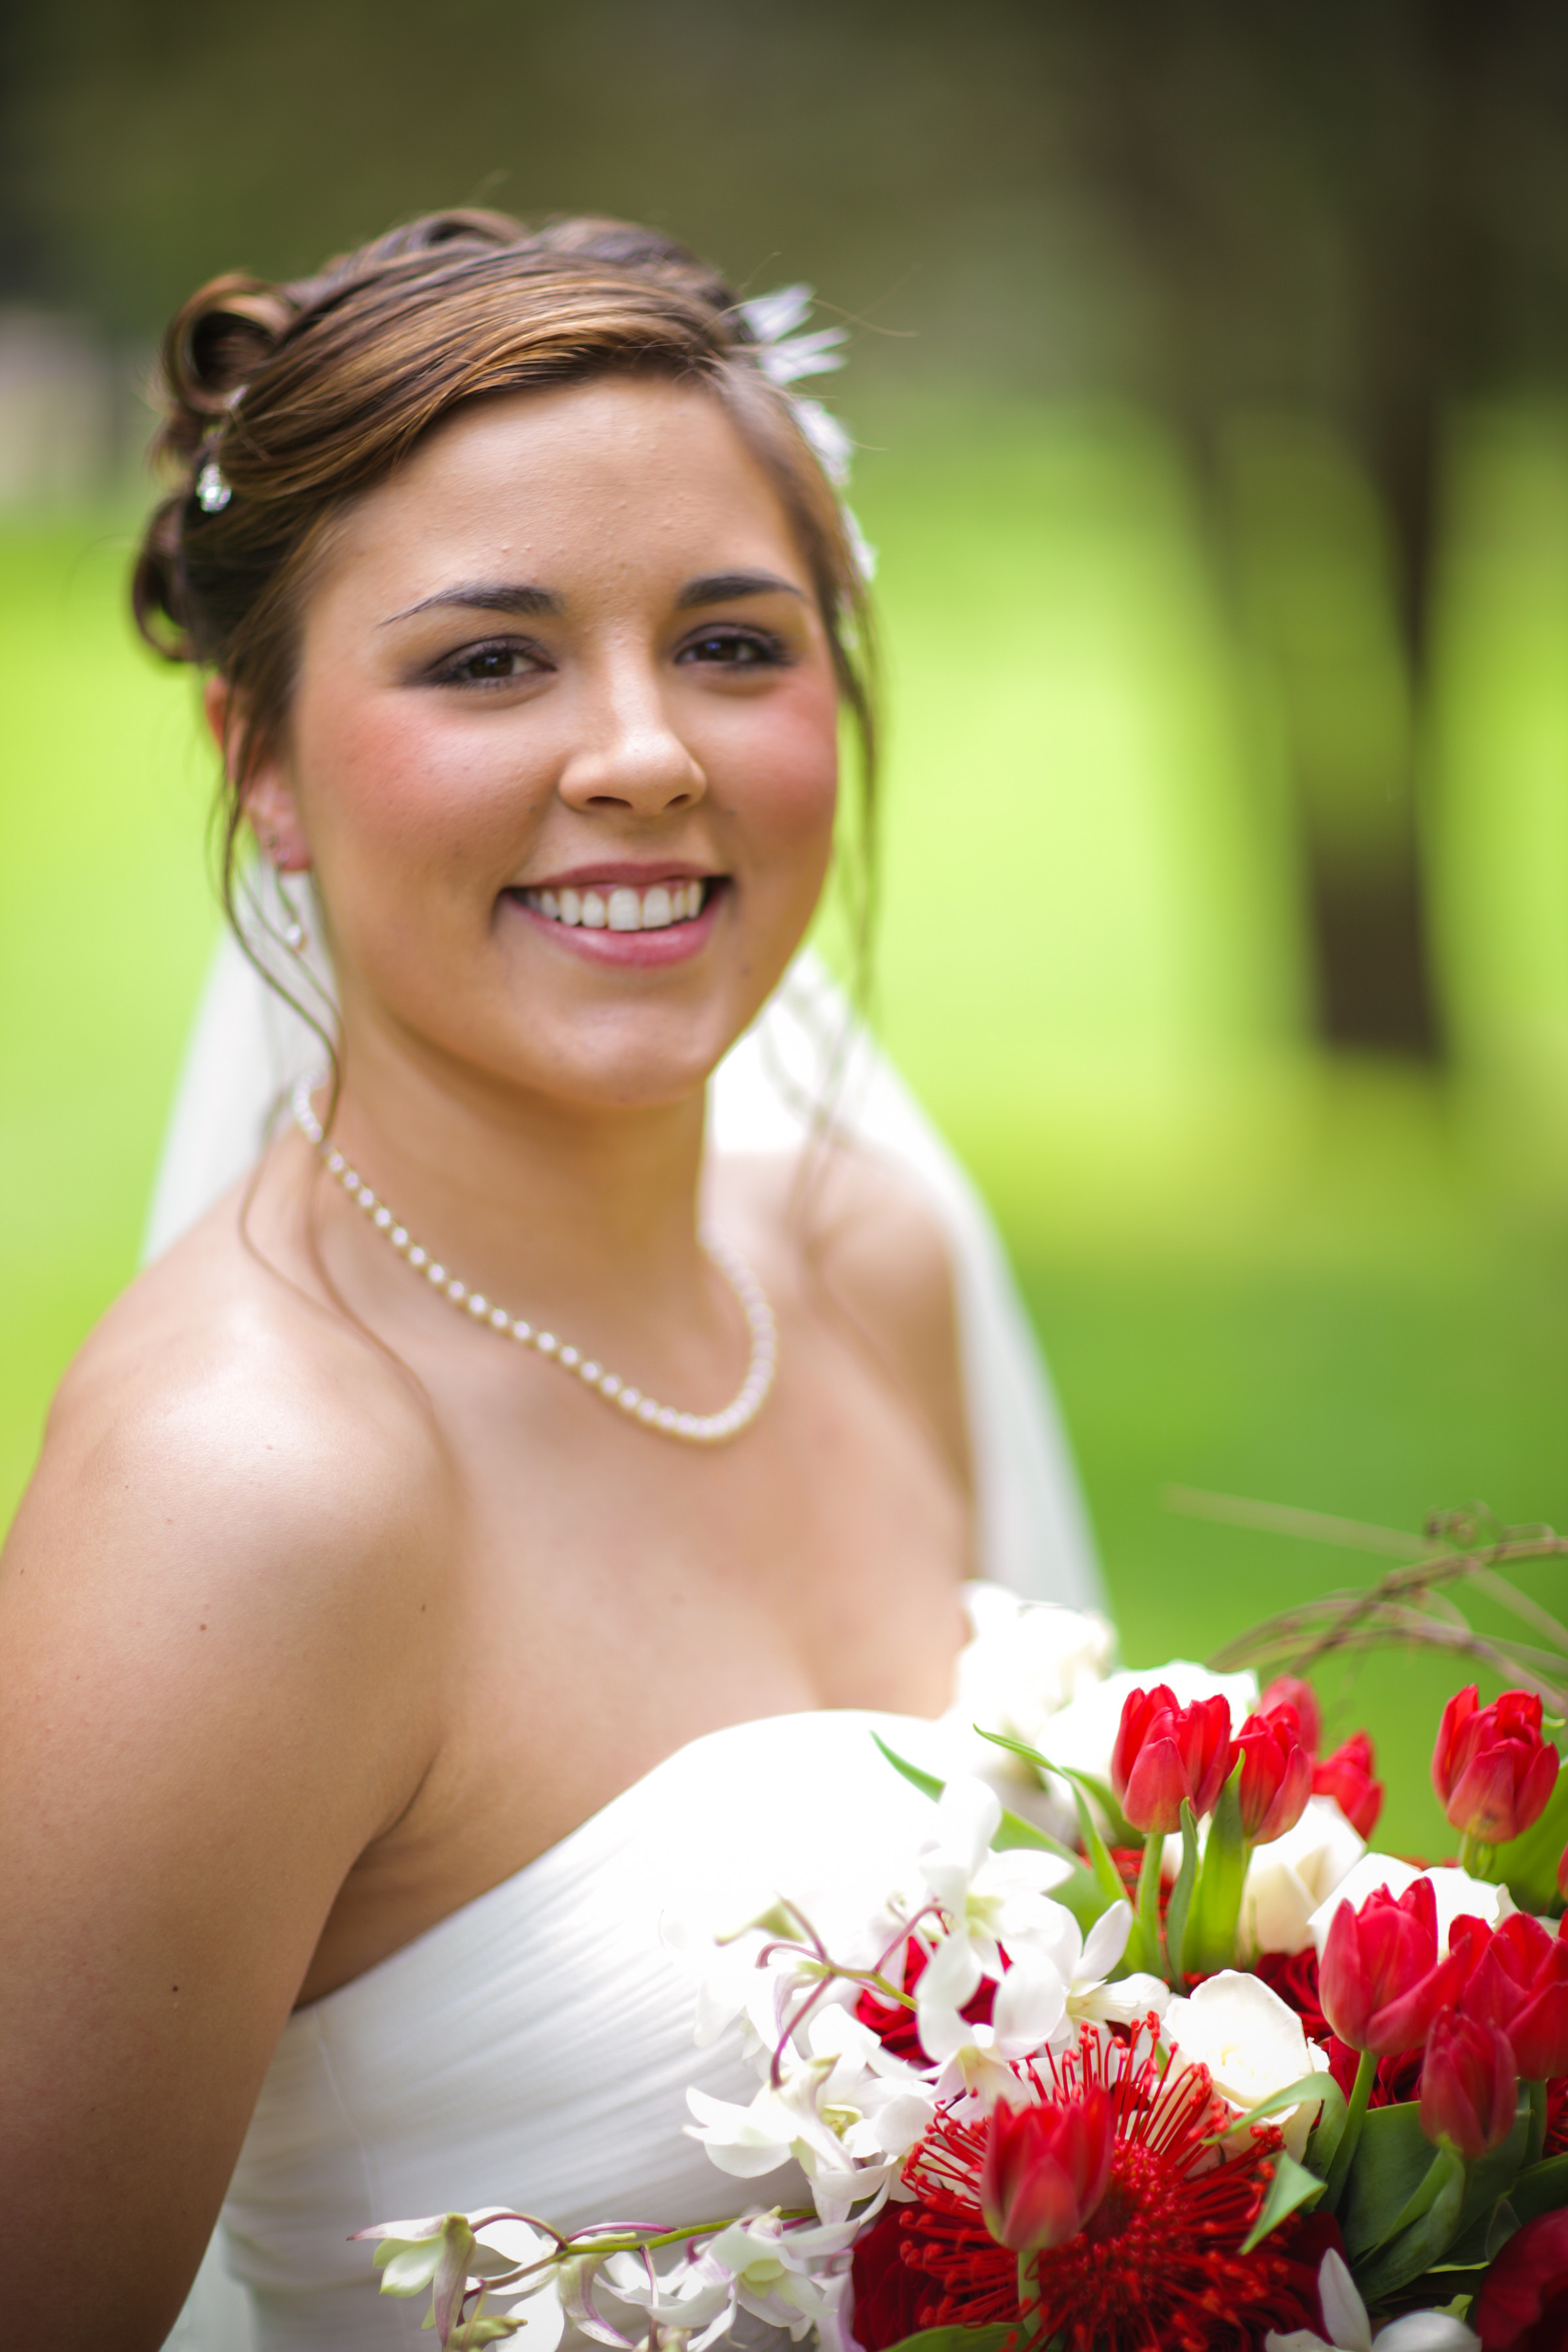 Lucas & Jill Smith married on June 18th, 2011 at the Colorado Springs Fine-Art Center.